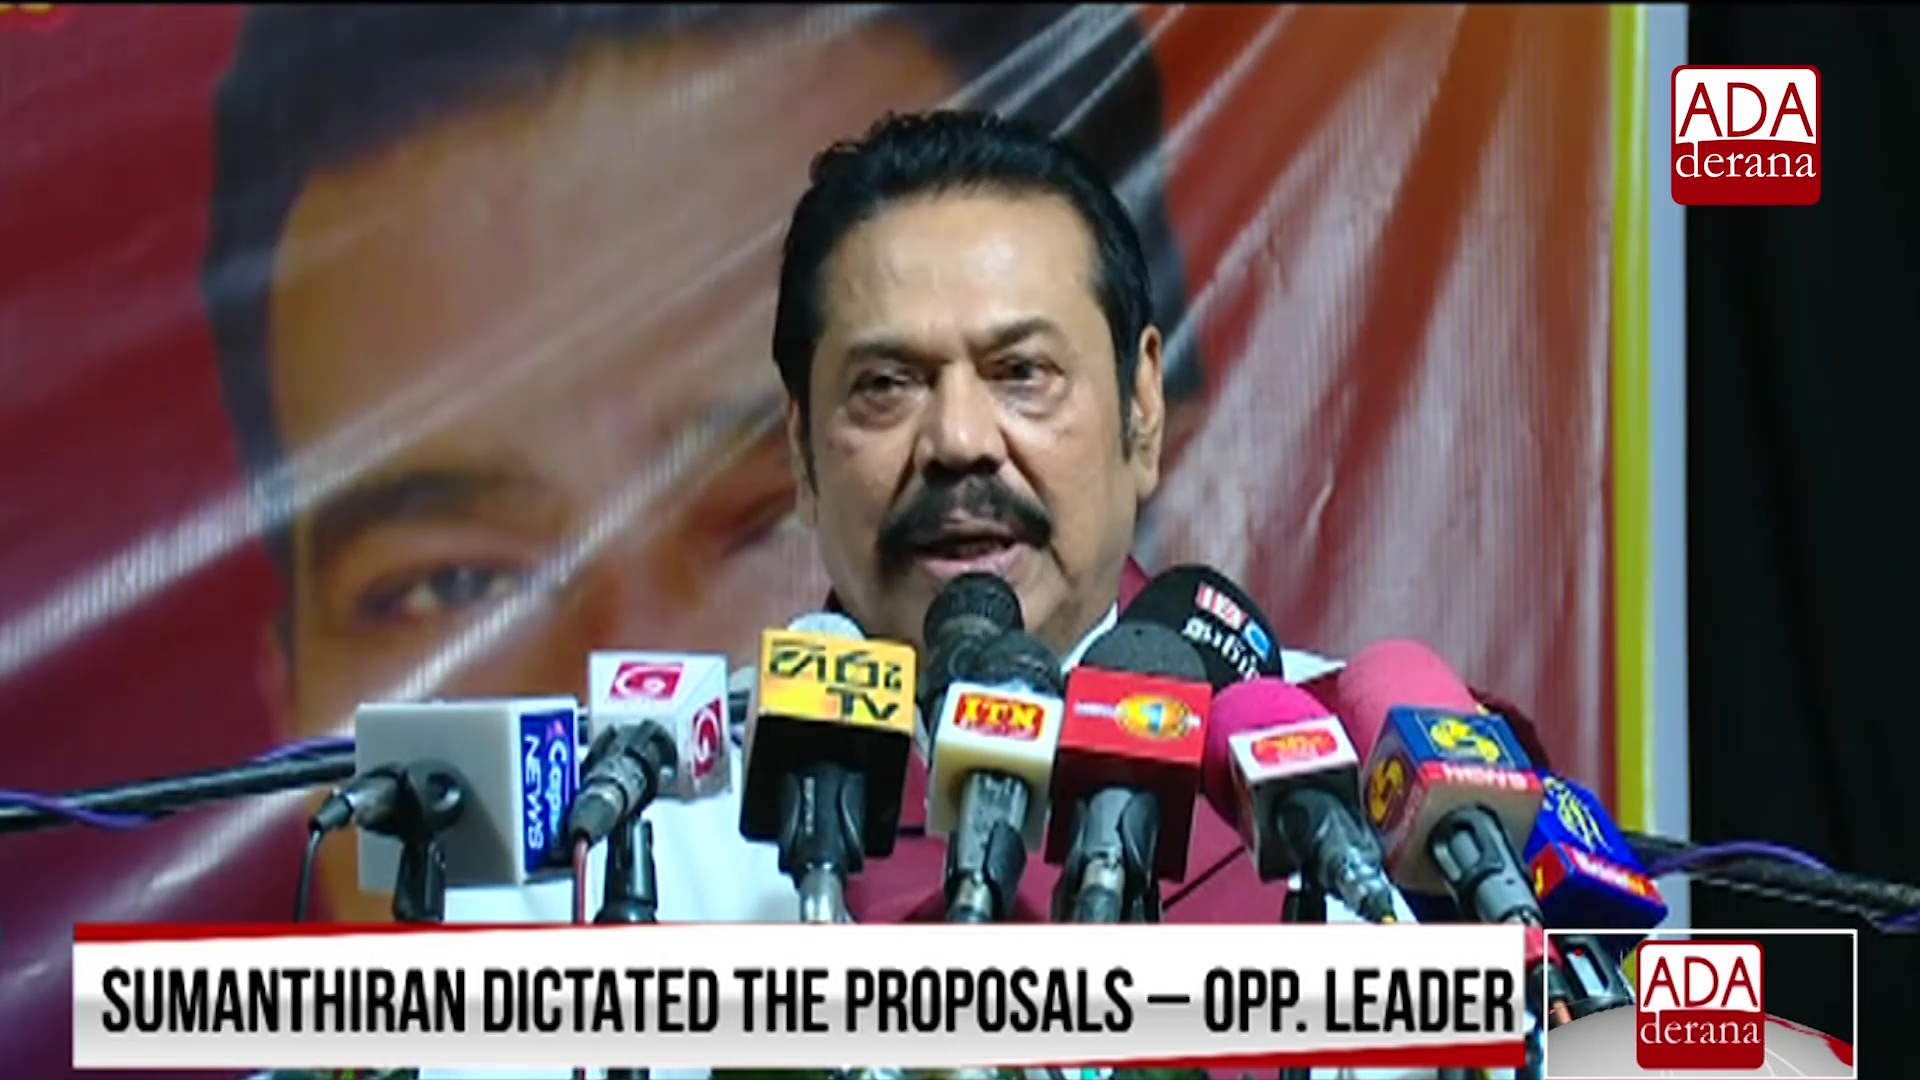 We do not attempt to stir up racism - Mahinda Rajapaksa  (English)